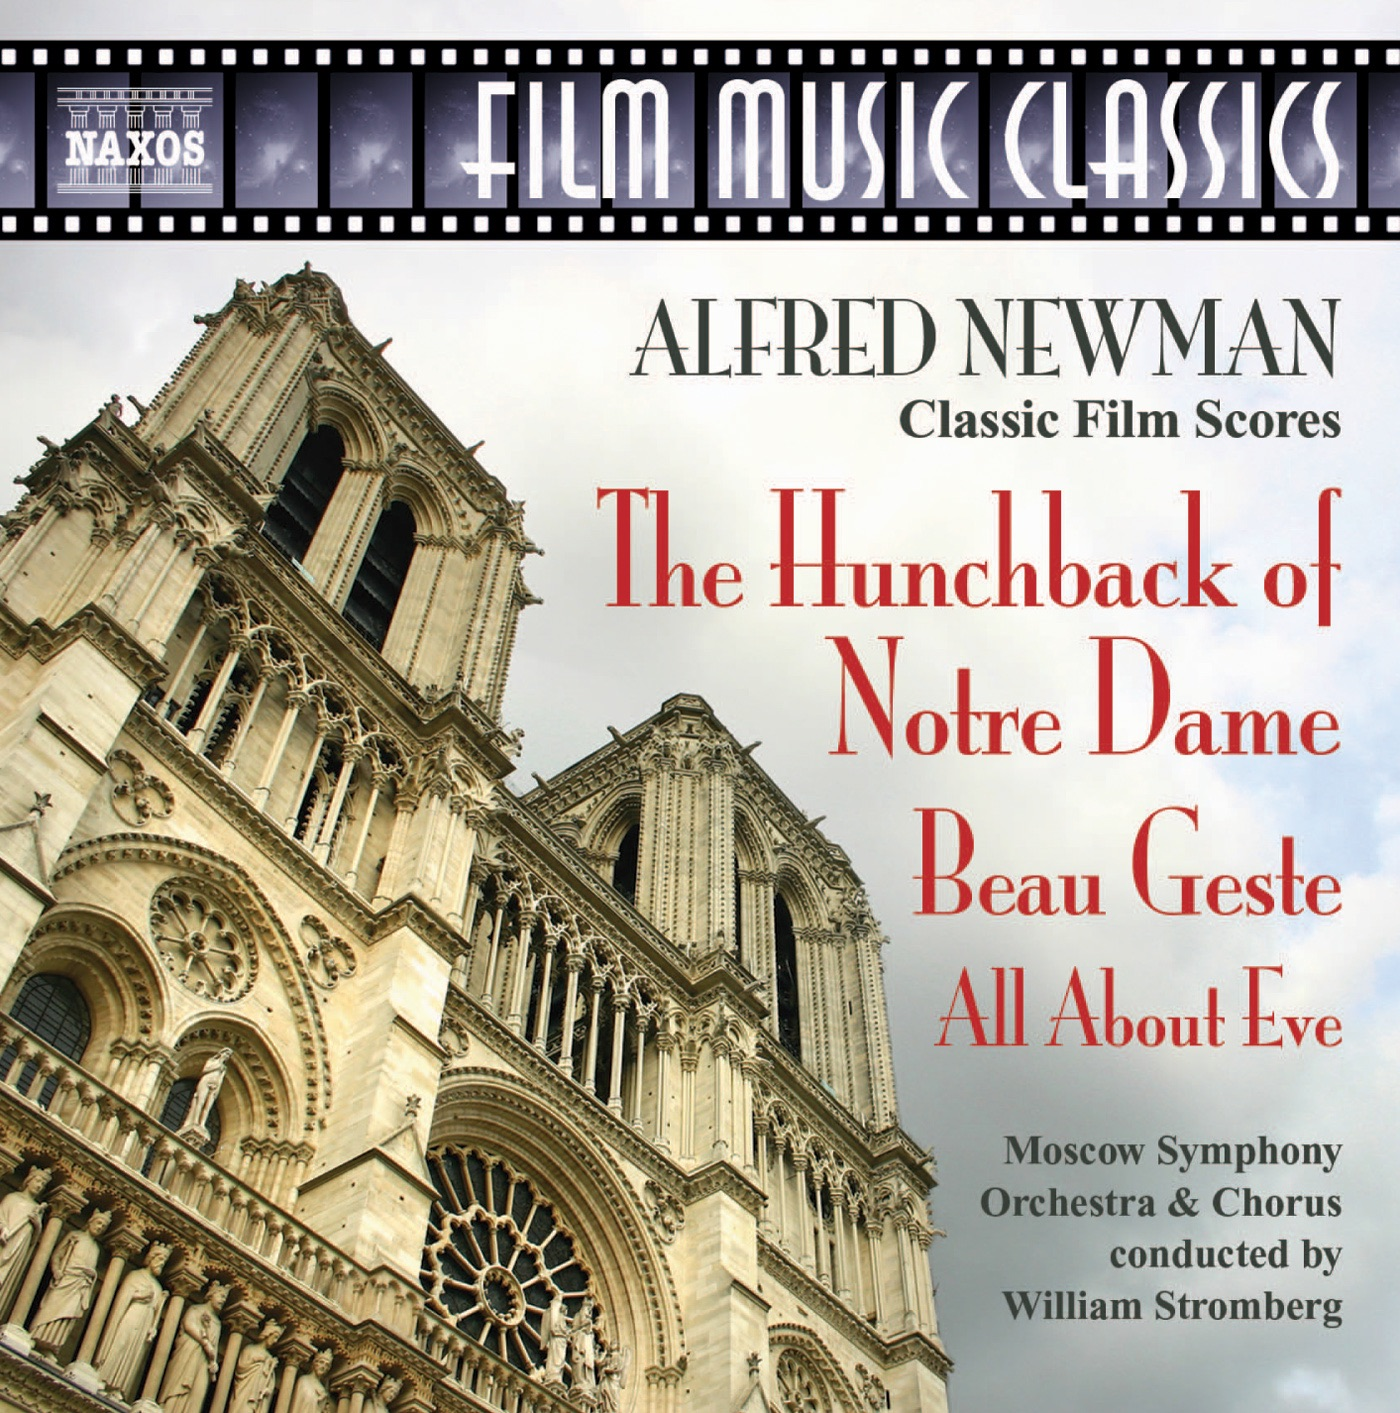 The Hunchback of Notre Dame (restored and Reconstructed By J. Morgan): Whipping